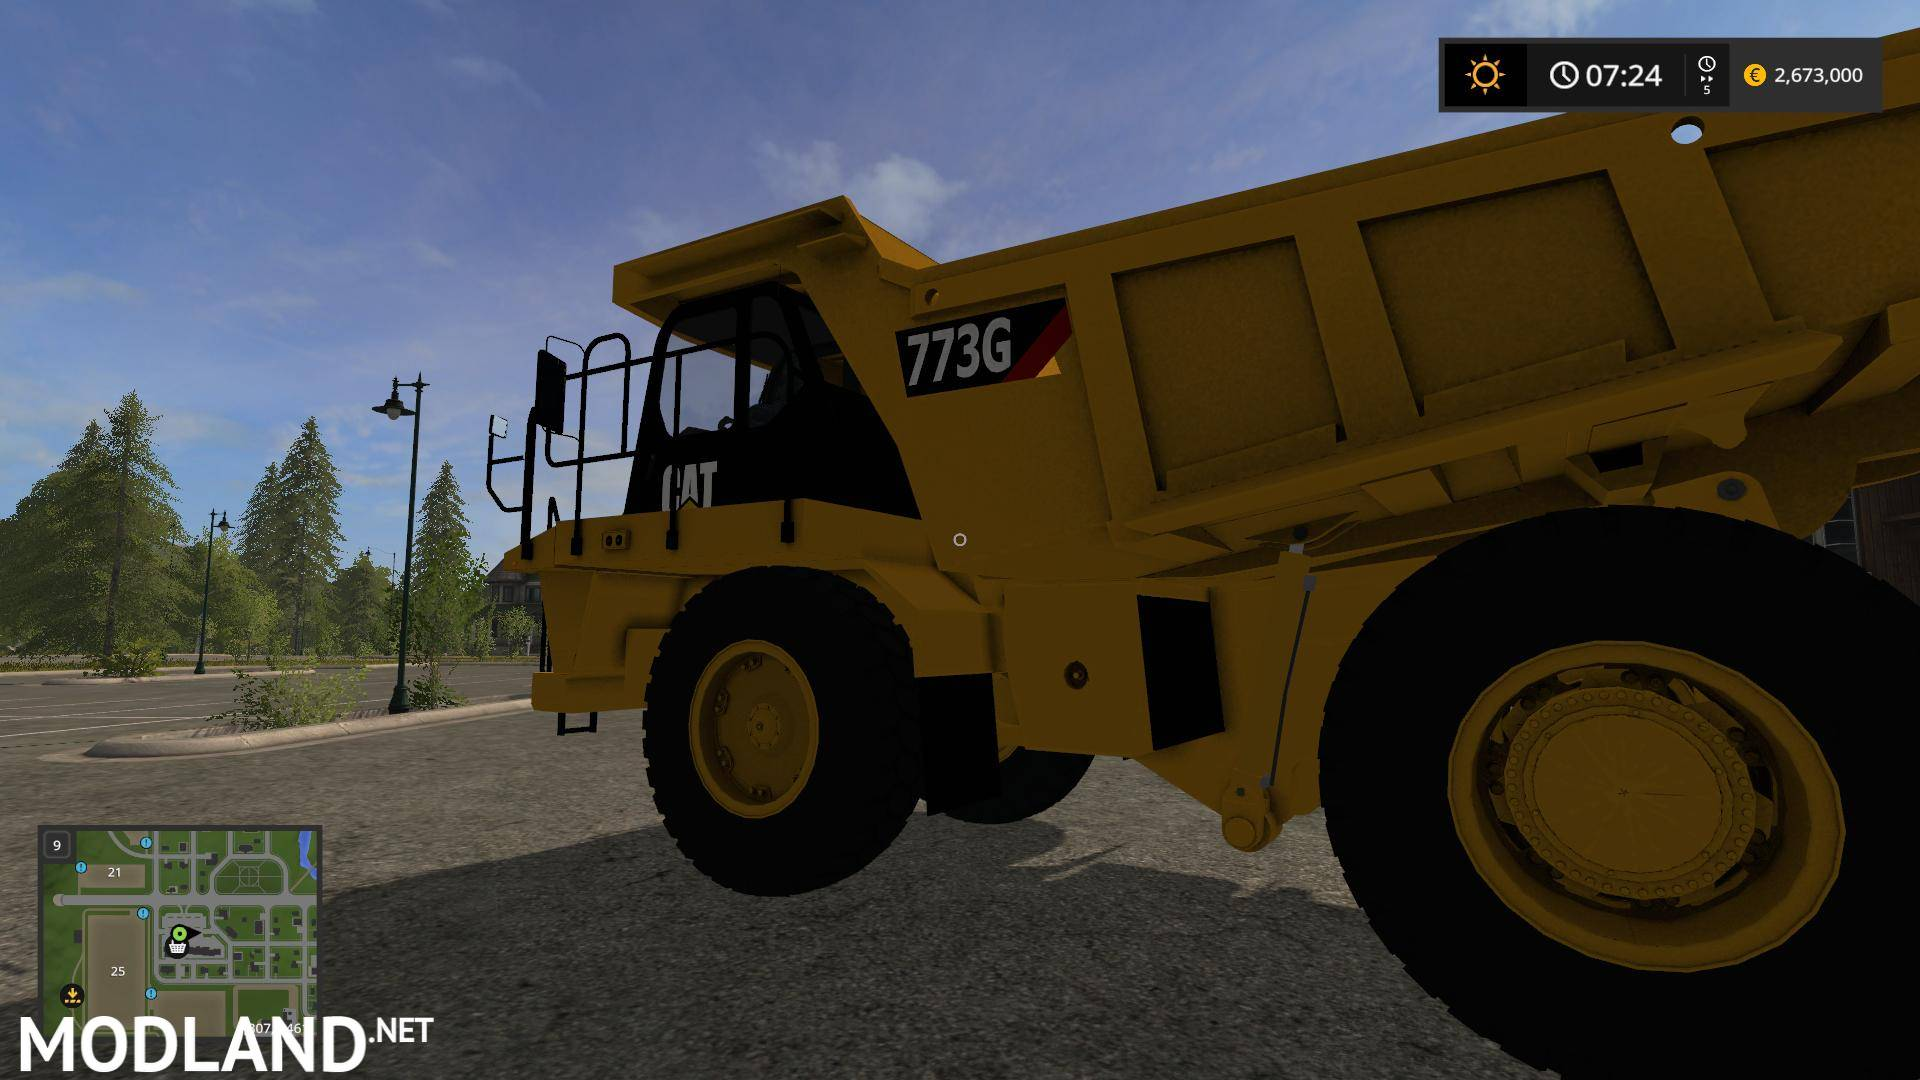 CAT 773G V 1.2 Mod Farming Simulator 17